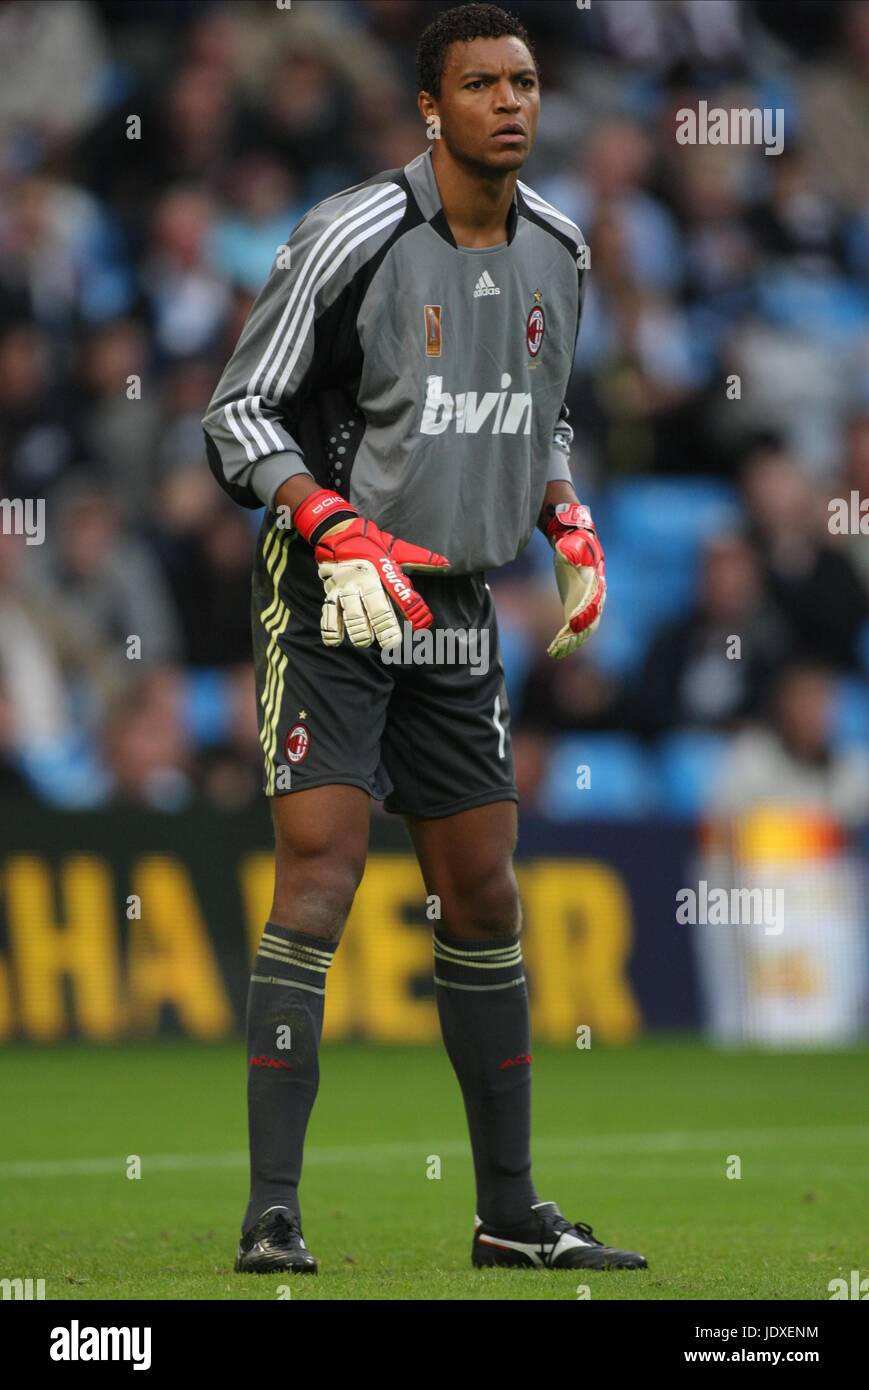 Nelson Dida Ac Milan City Of Manchester Stadium Manchester England 09 Stock Photo Alamy